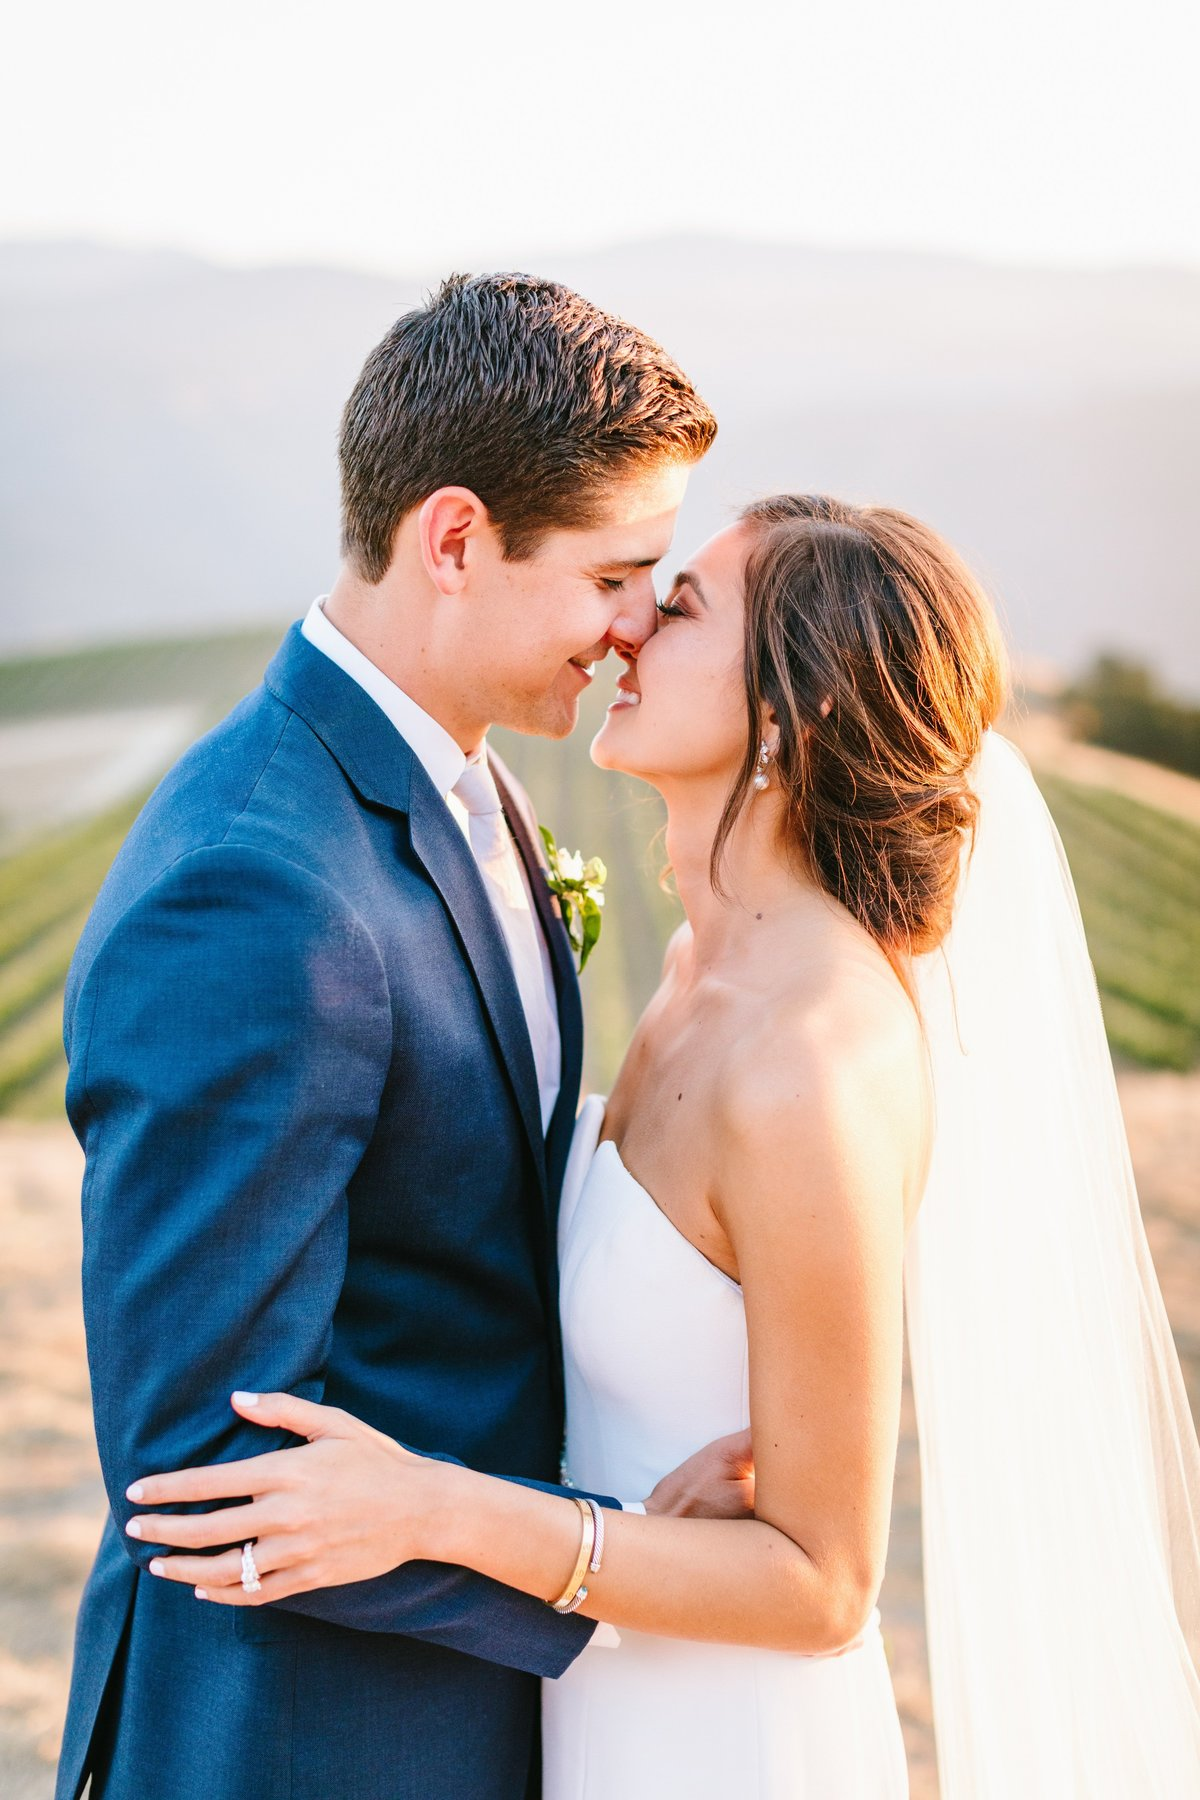 Best California Wedding Photographer-Jodee Debes Photography-27